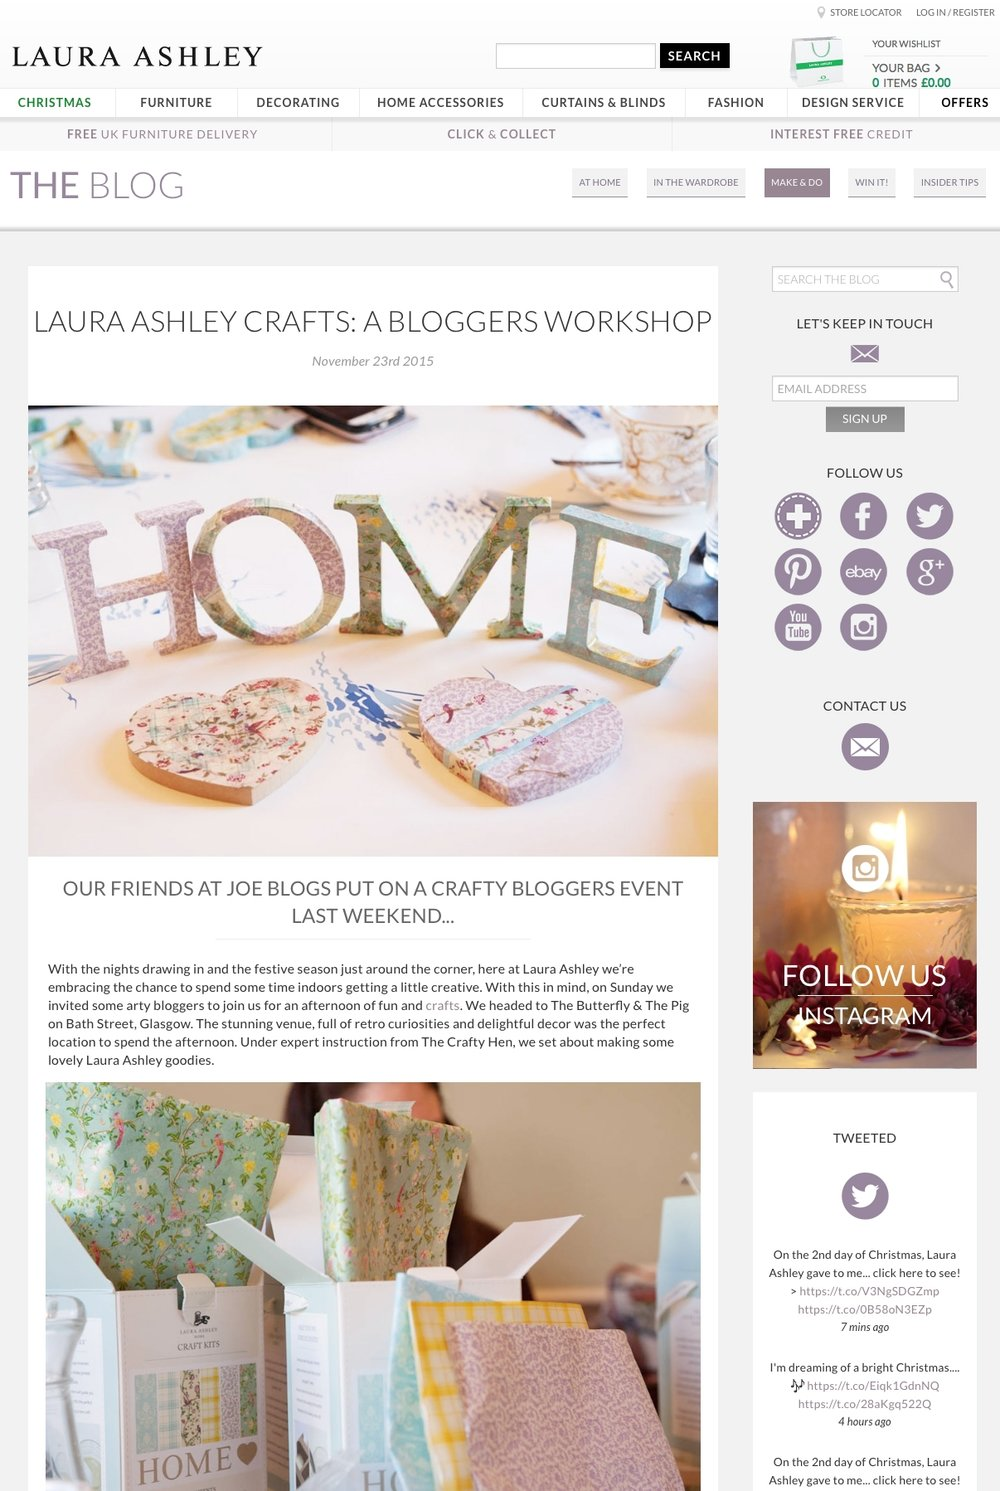 Laura Ashley Official